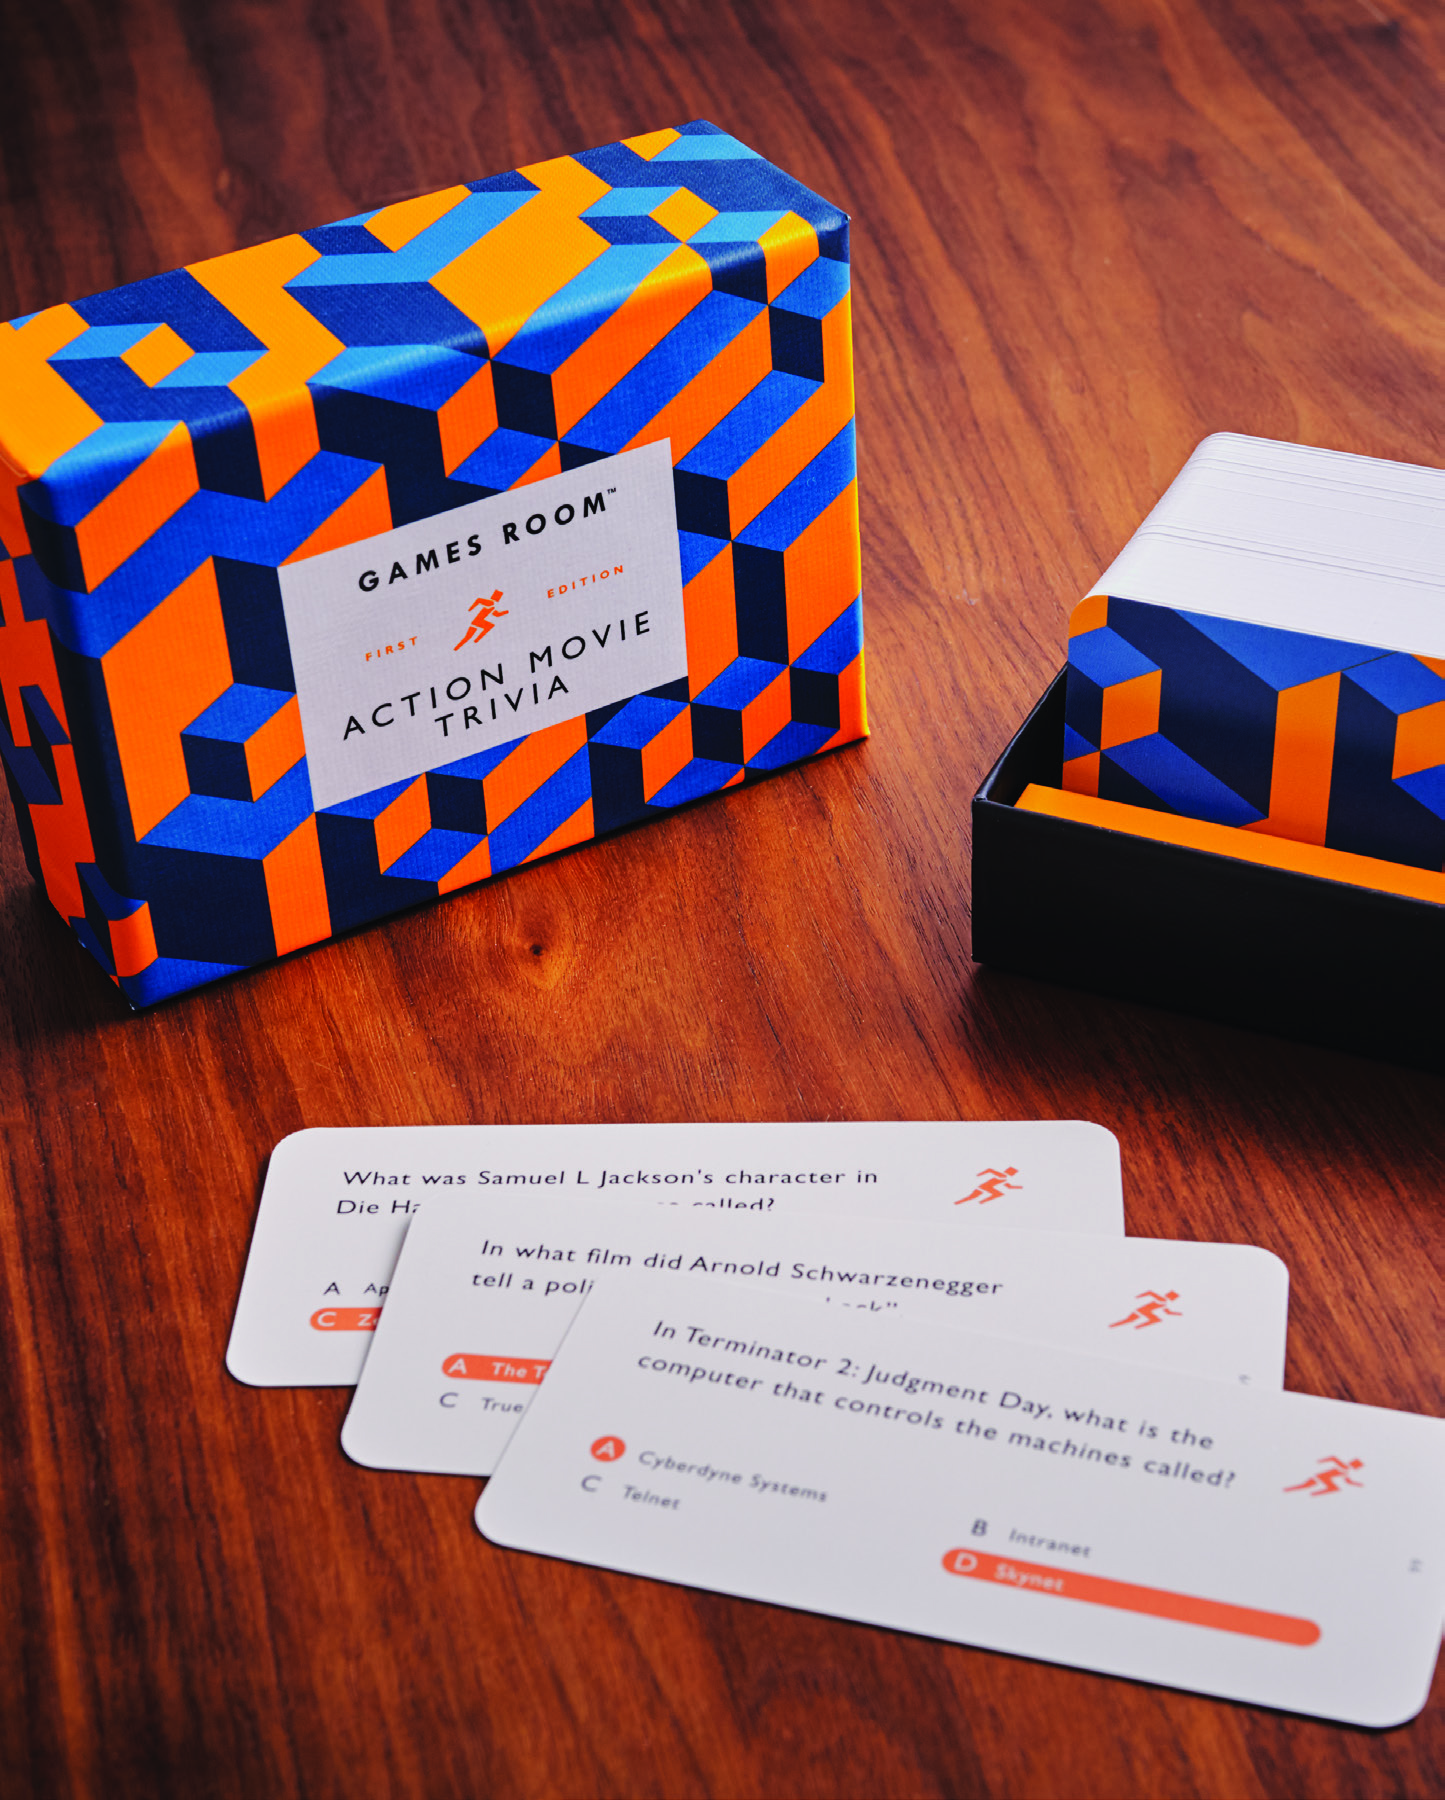 Chronicle Games Room Trivia Boxes